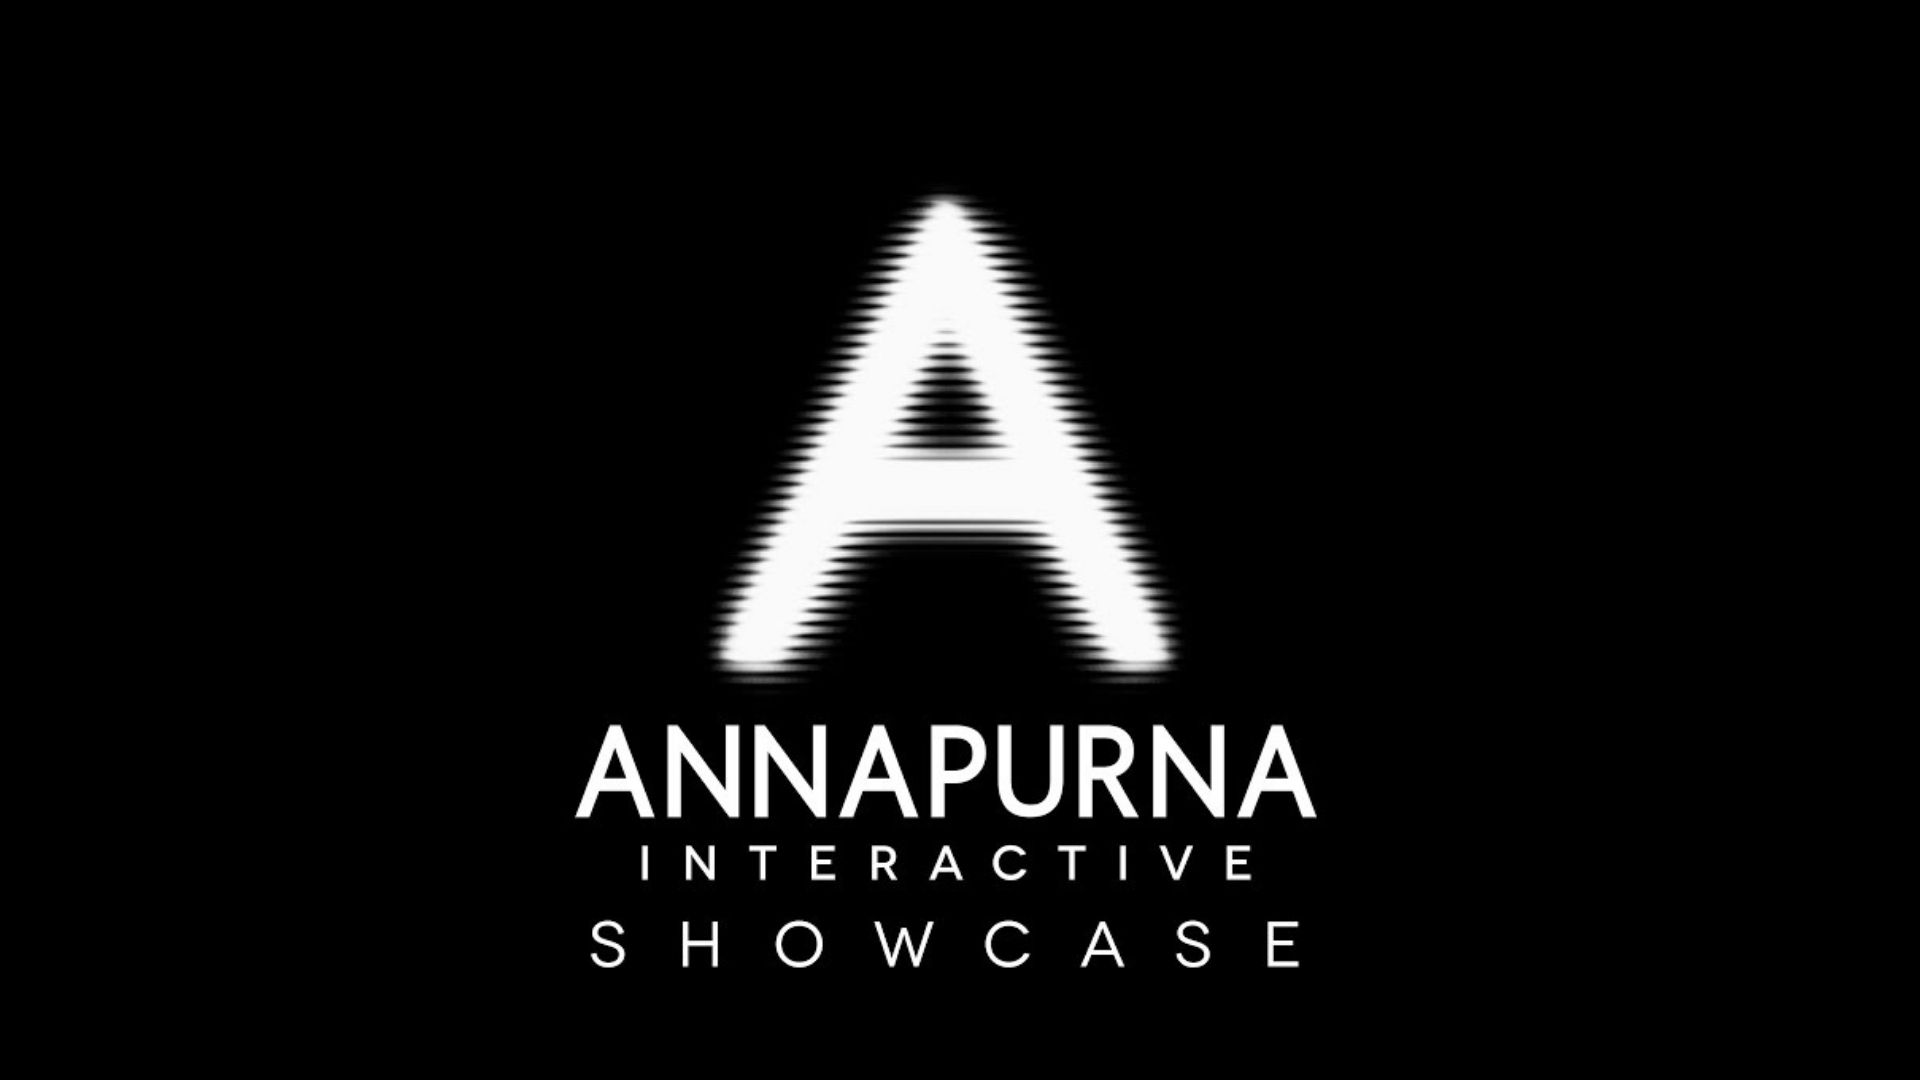 Annapurna Interactive Showcase Announced For July 29, New Announcements And Updates To Look Out For thumbnail